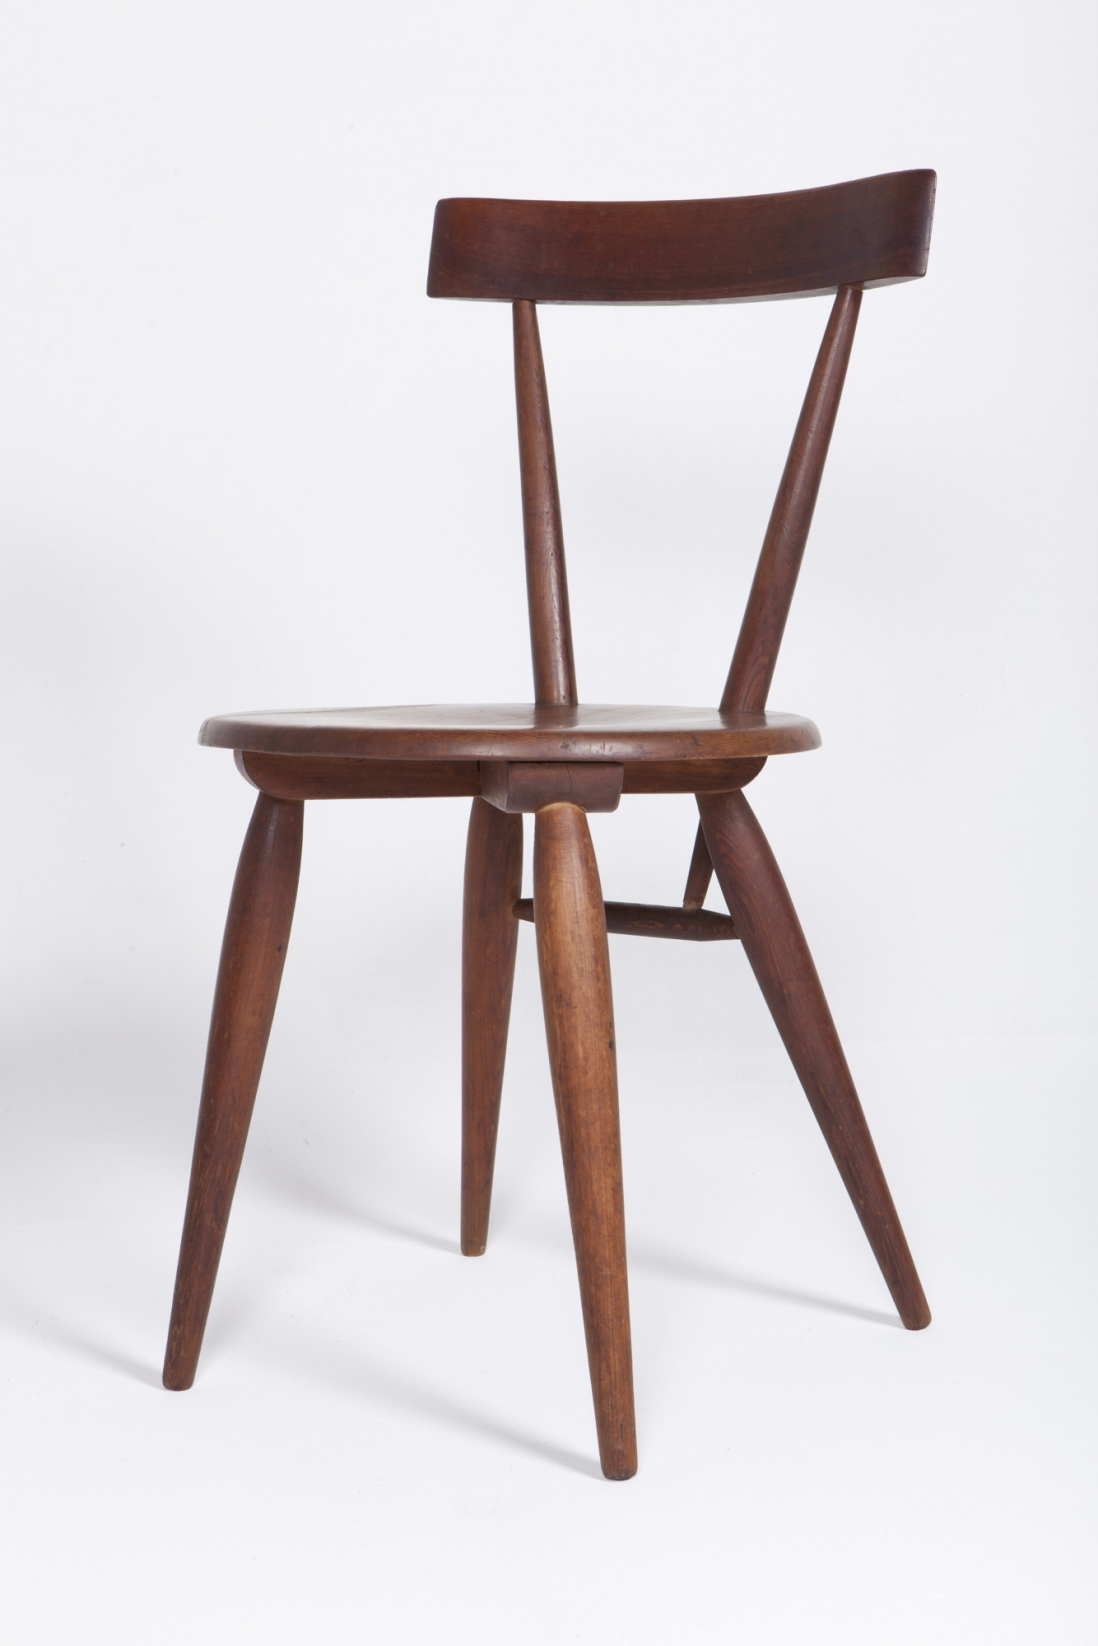 Side chair, side view